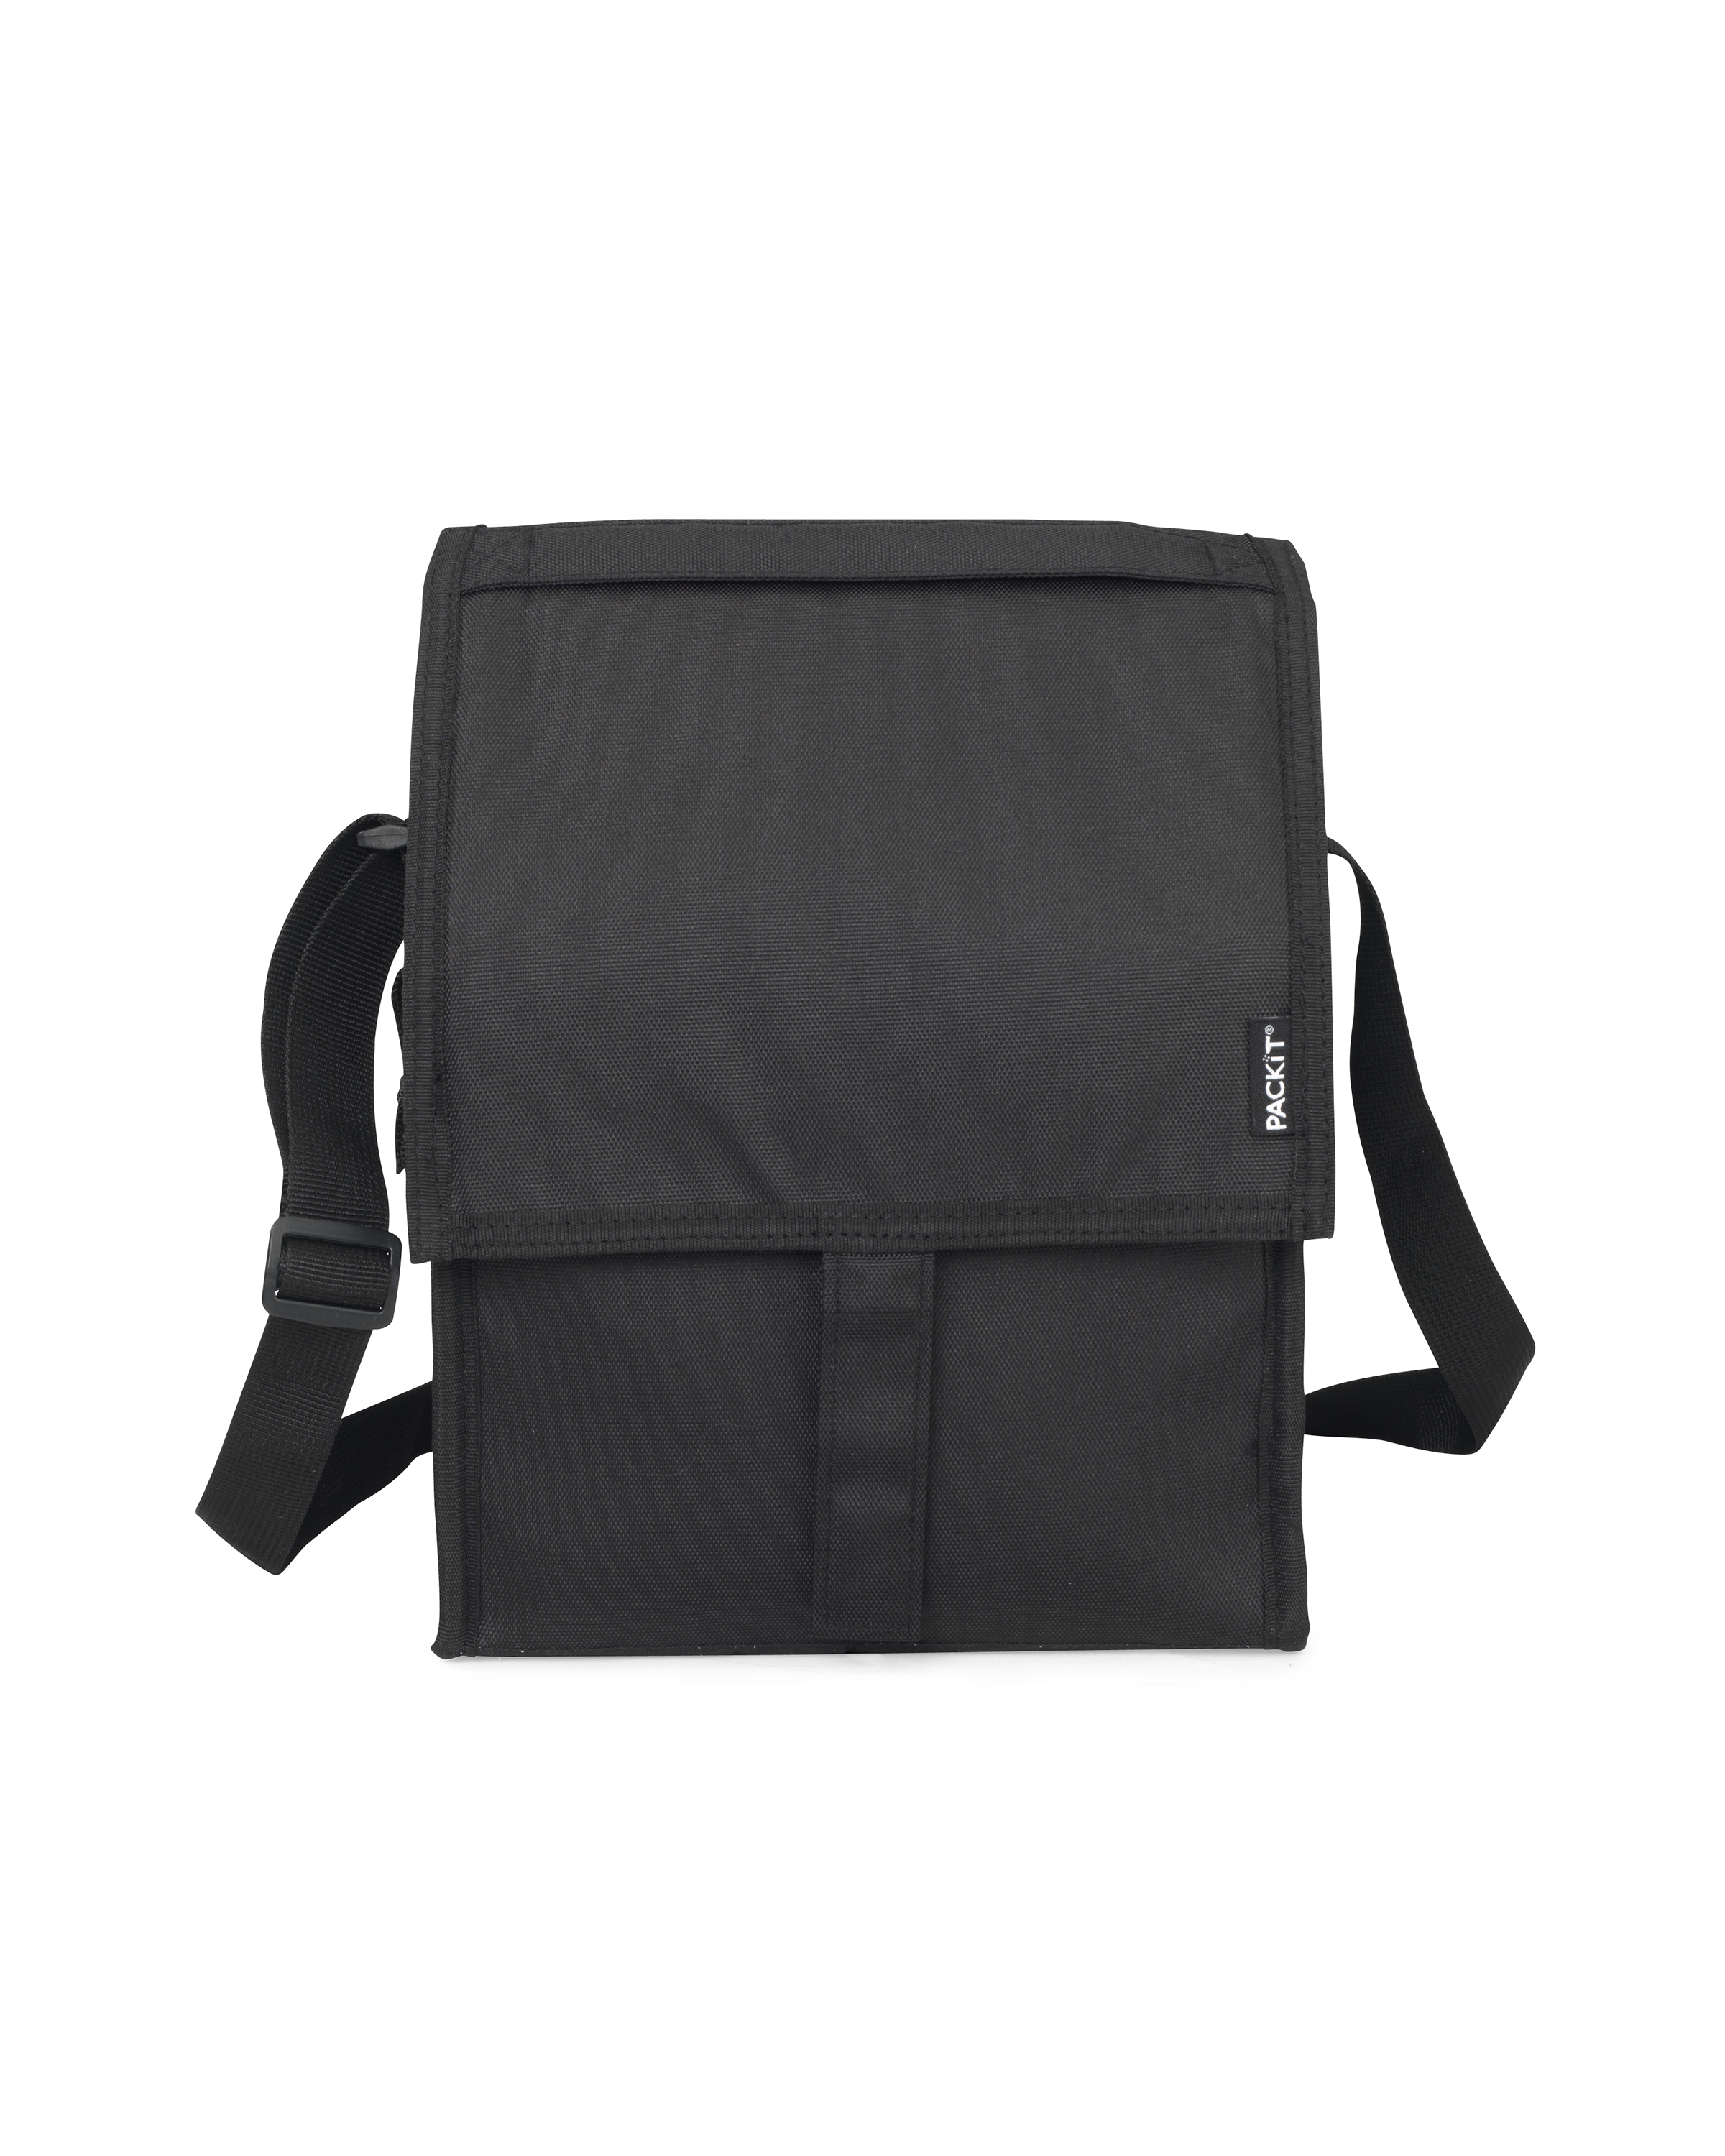 DELUXE LUNCH BAG - BLACK - PACKIT